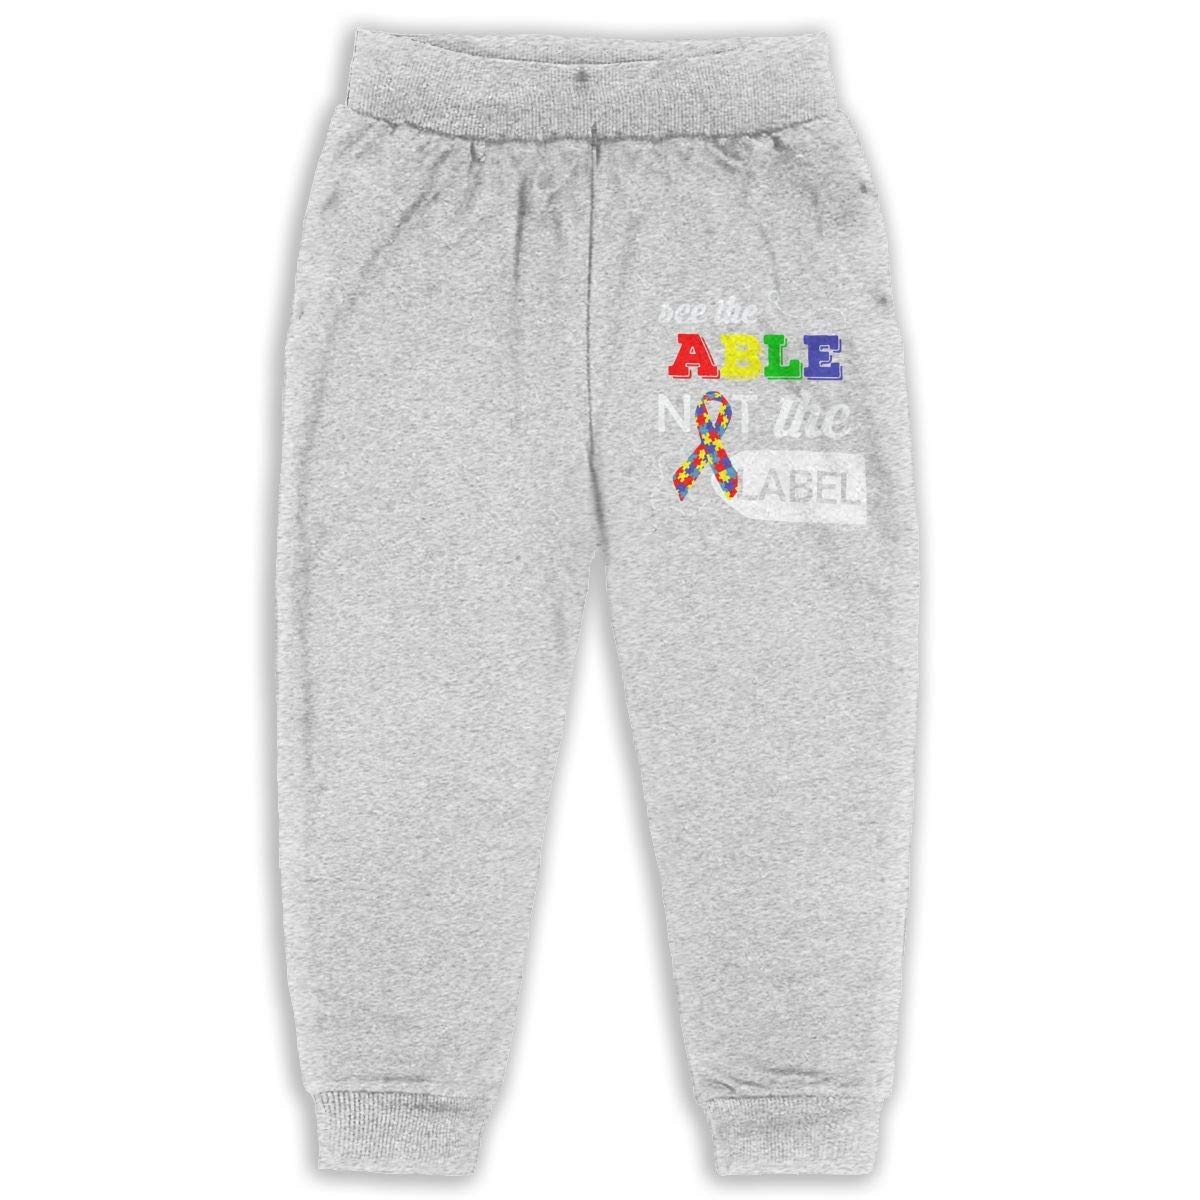 See The Able Not The Label Autism Awareness Unisex Kid Toddler Pants Soft Cozy Boys /& Girls Elastic Trousers